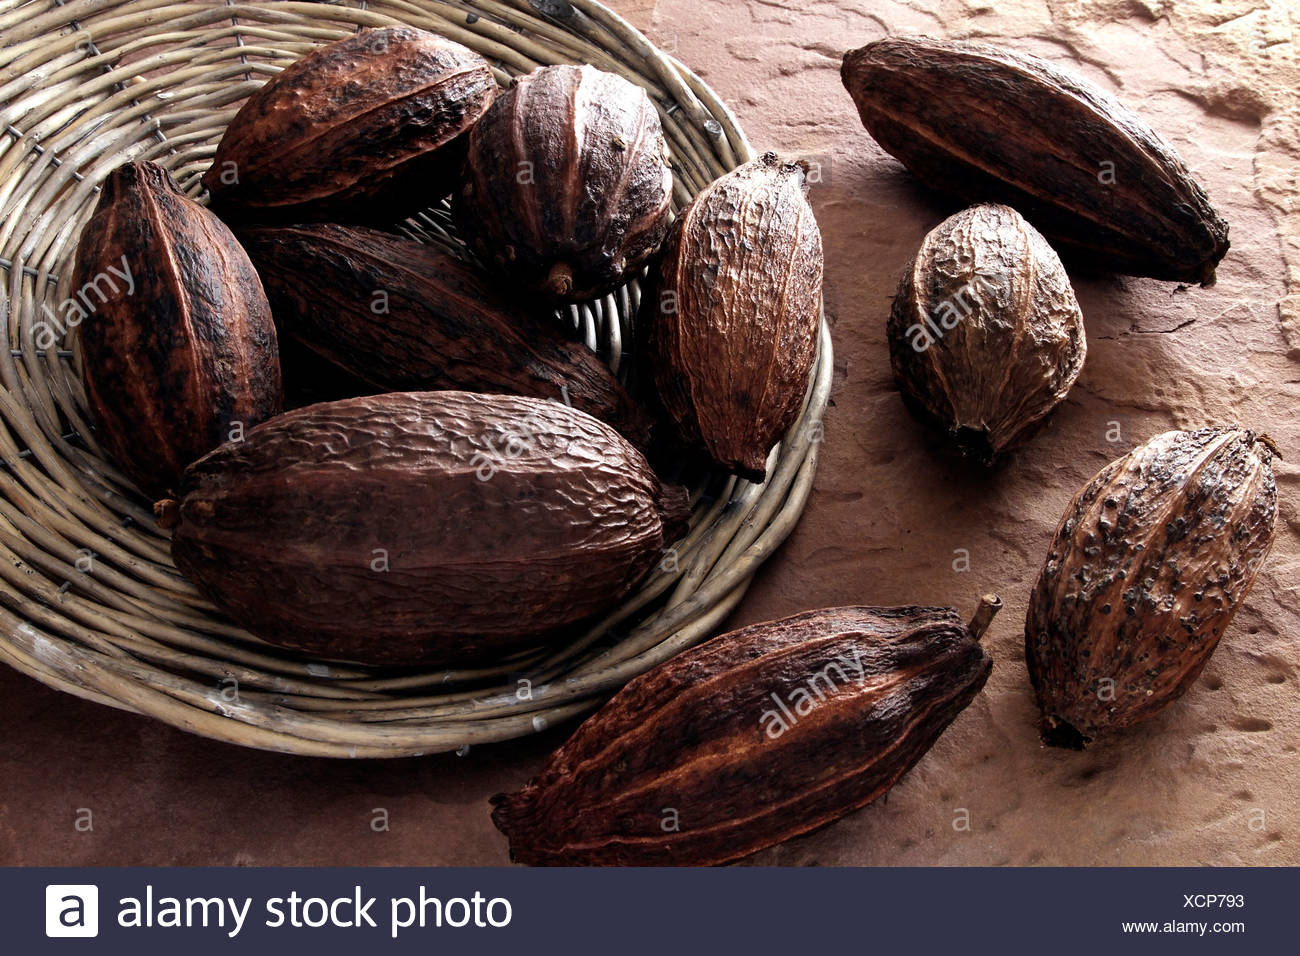 Cocoa beans, tipped from a wicker plate on sandstone - Stock Image